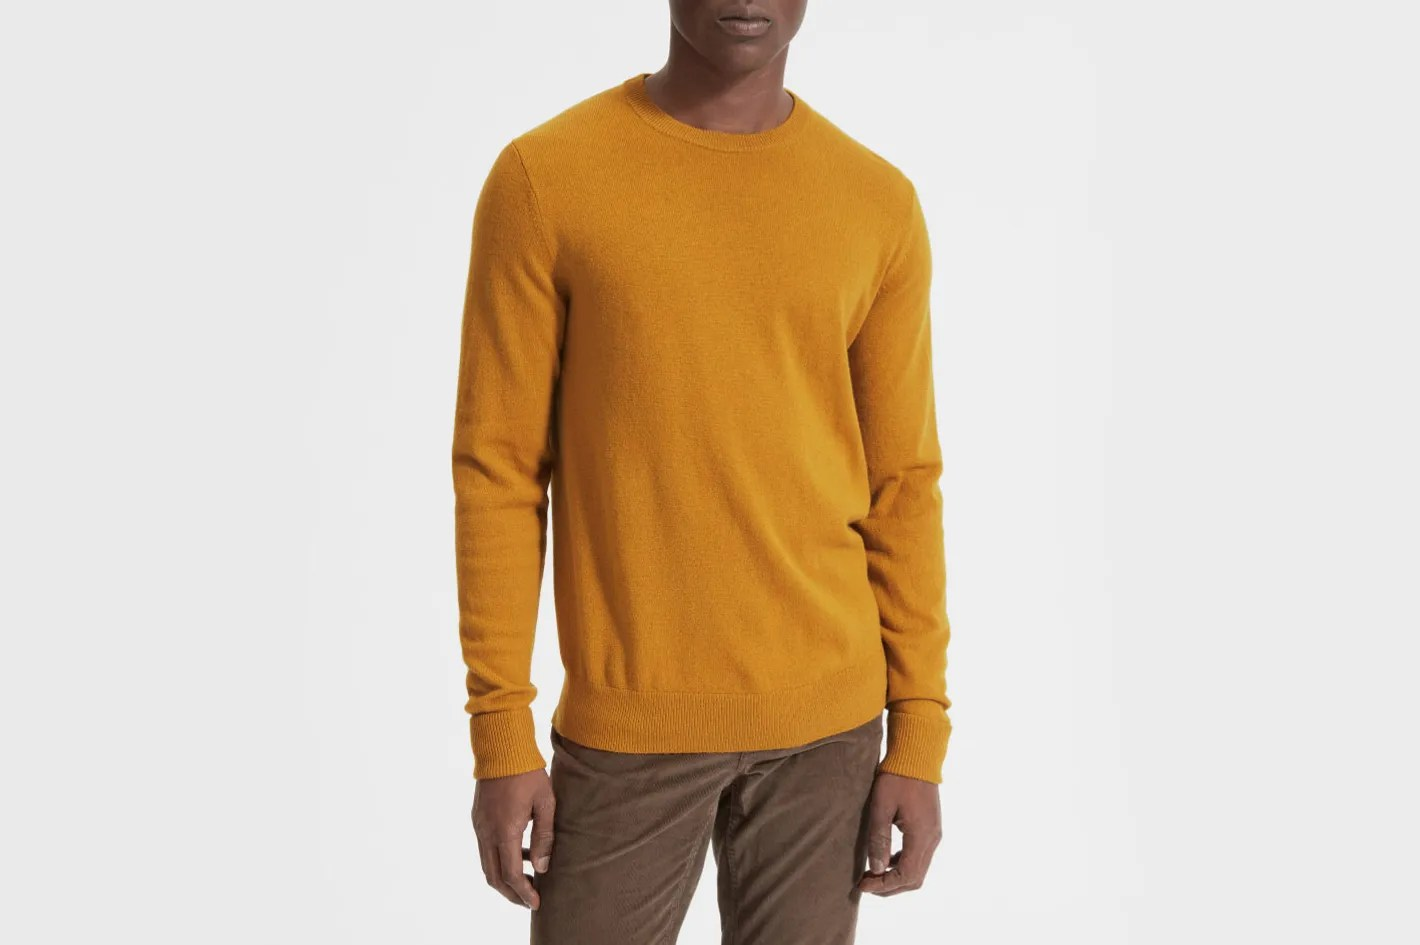 12 Best Cashmere Sweaters To Gift For The Holidays 2018